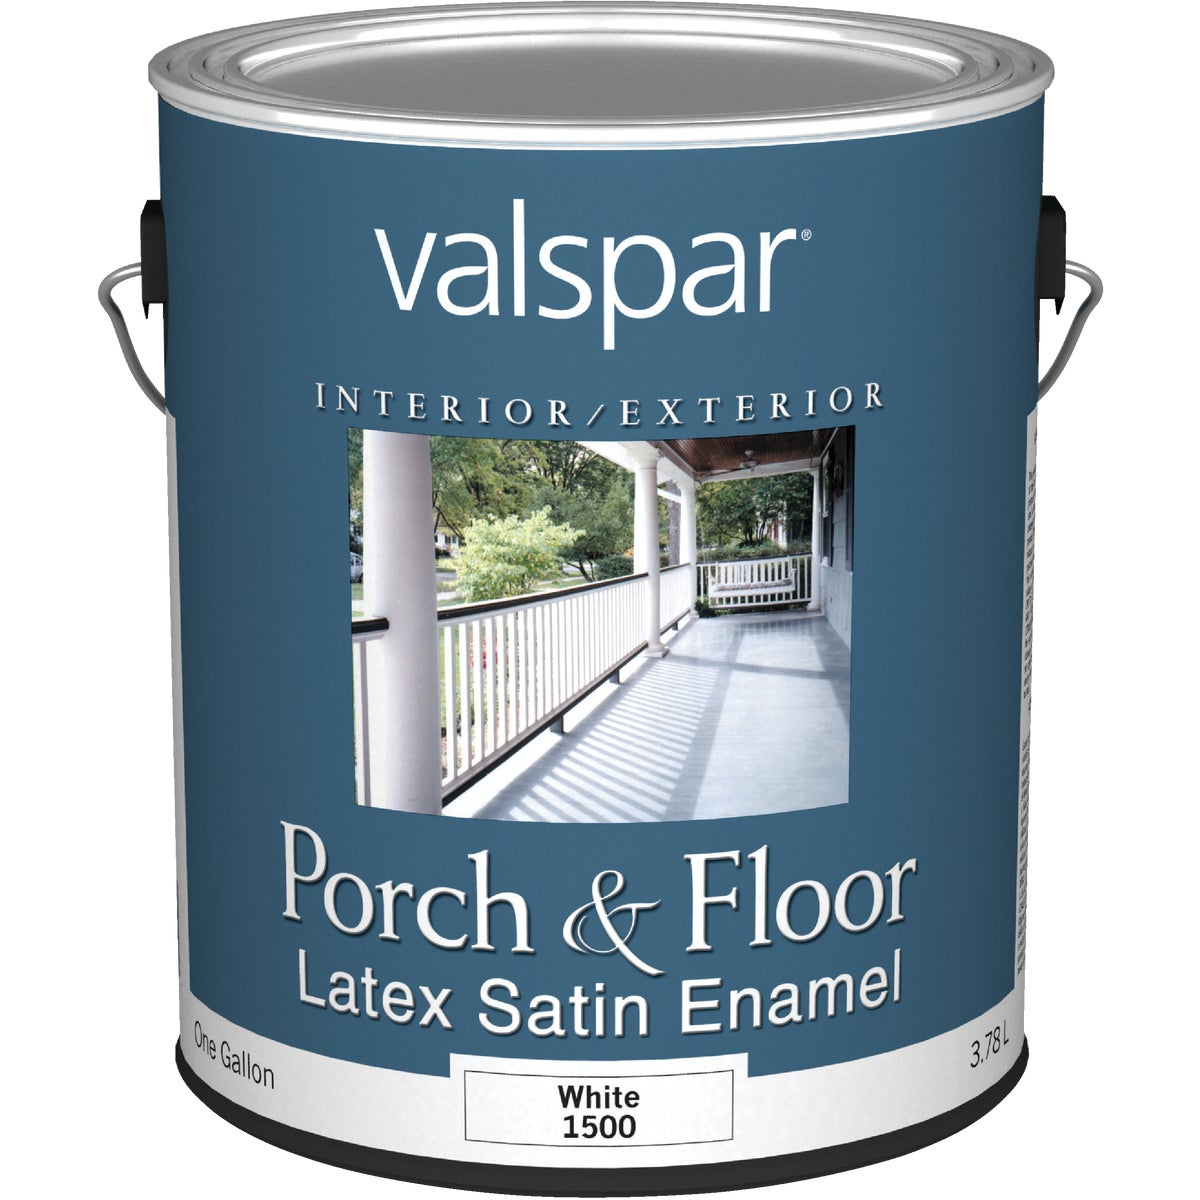 WHITE LTX FLOOR ENAMEL - 027.0001500.007 by Valspar Corp